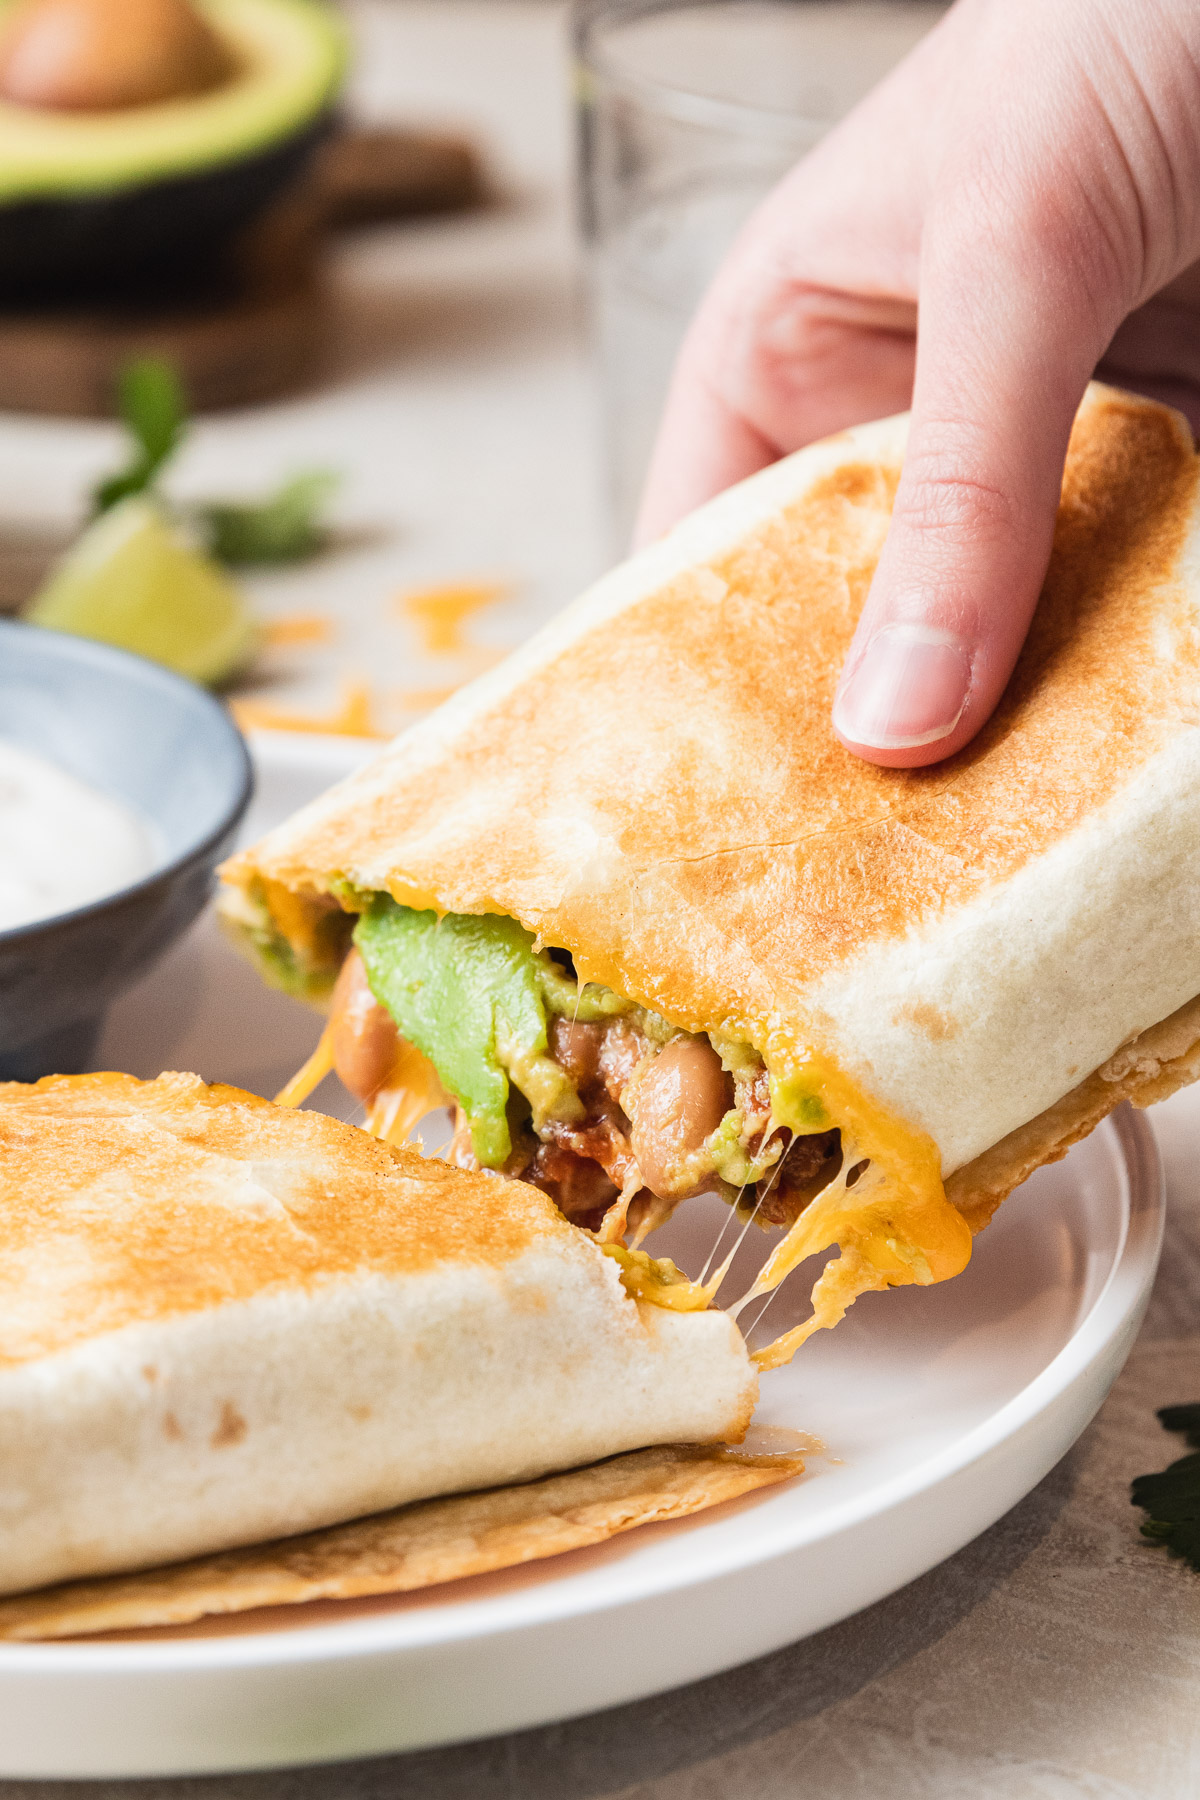 close up image of a grilled burrito cut open with a hand pulling it away from the white plate